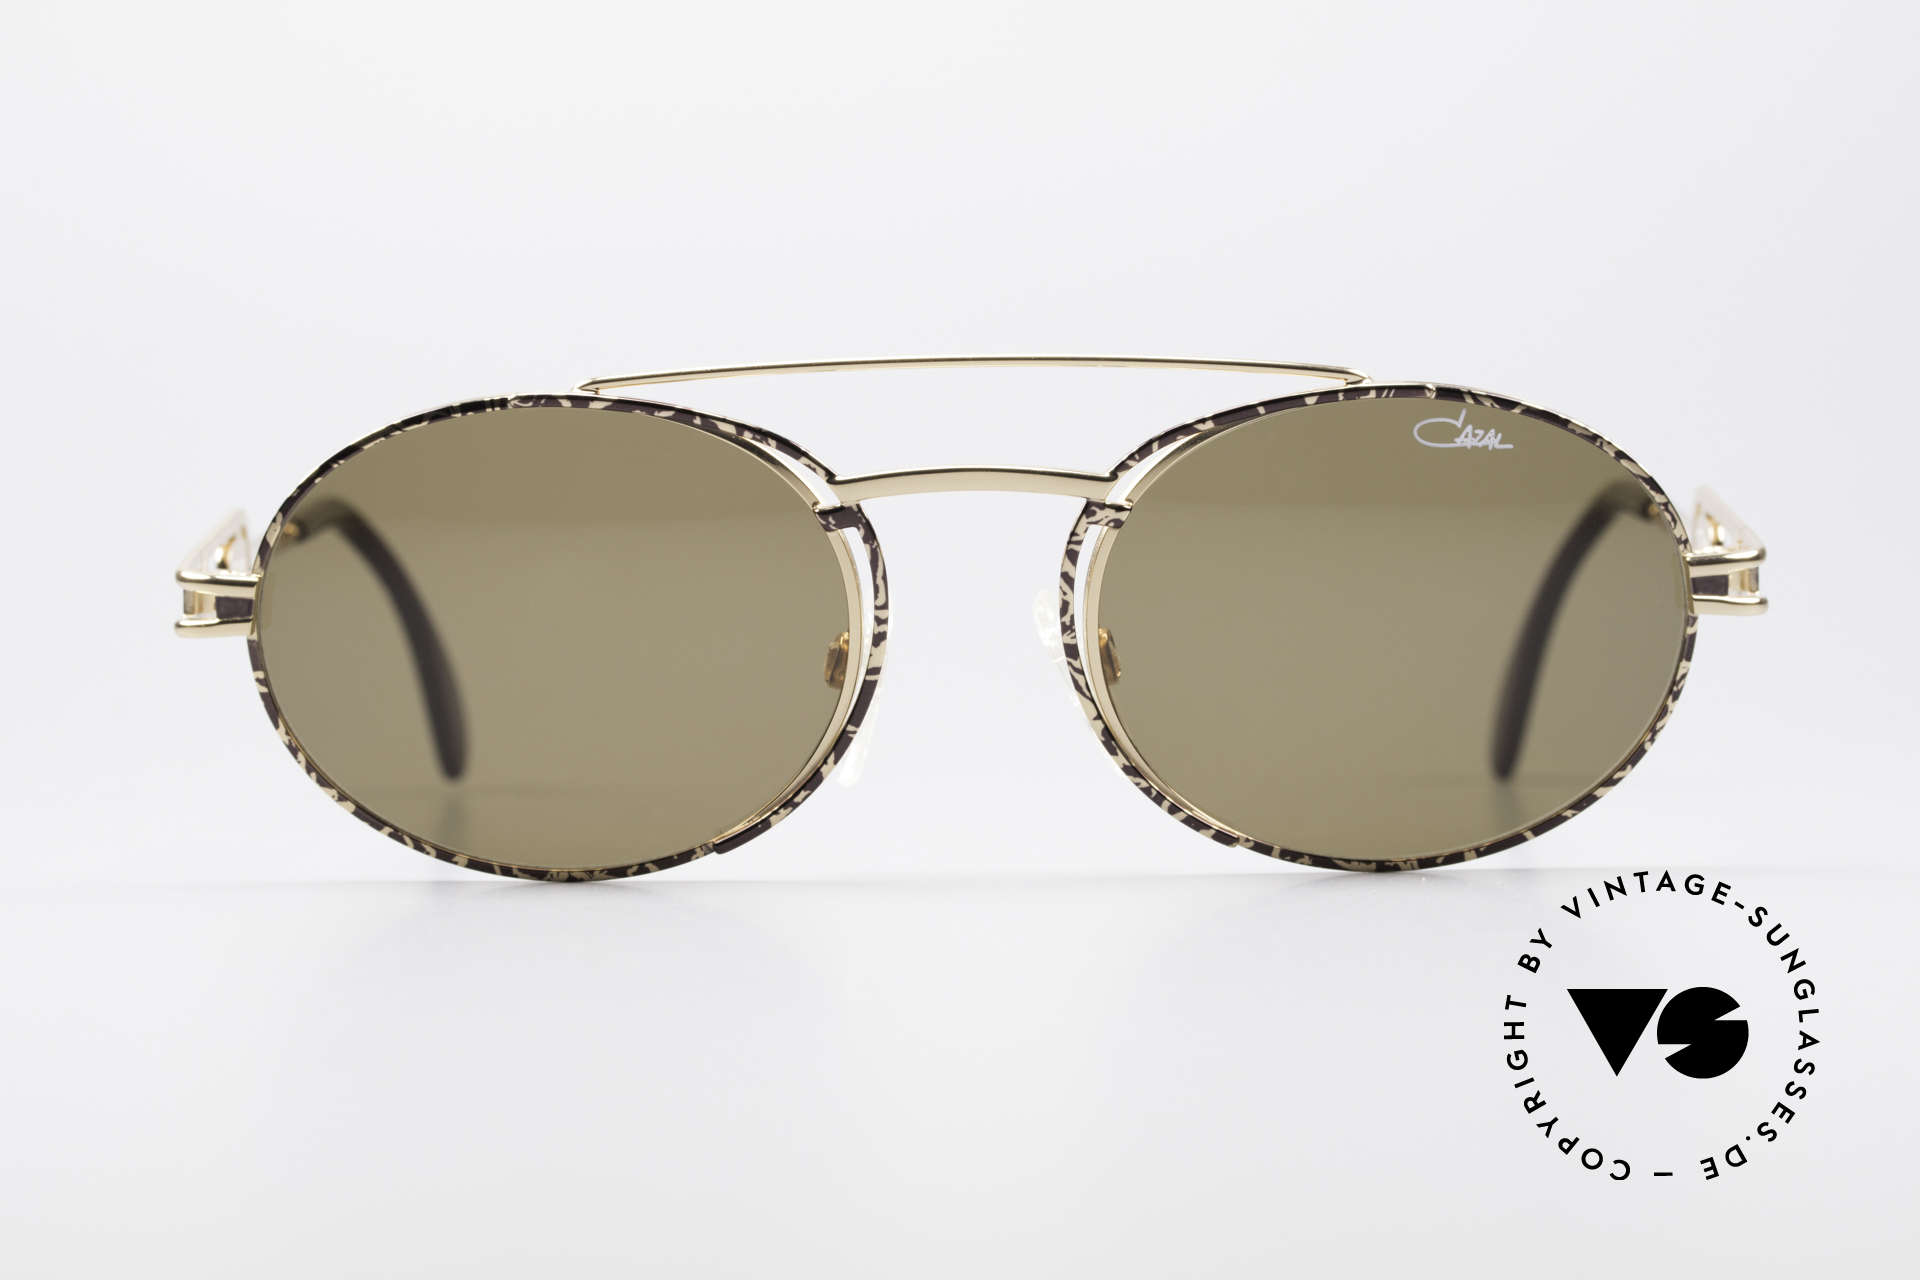 Cazal 965 90s Steampunk Oval Shades, frame is reminiscent of 'industrial/steampunk' design, Made for Men and Women